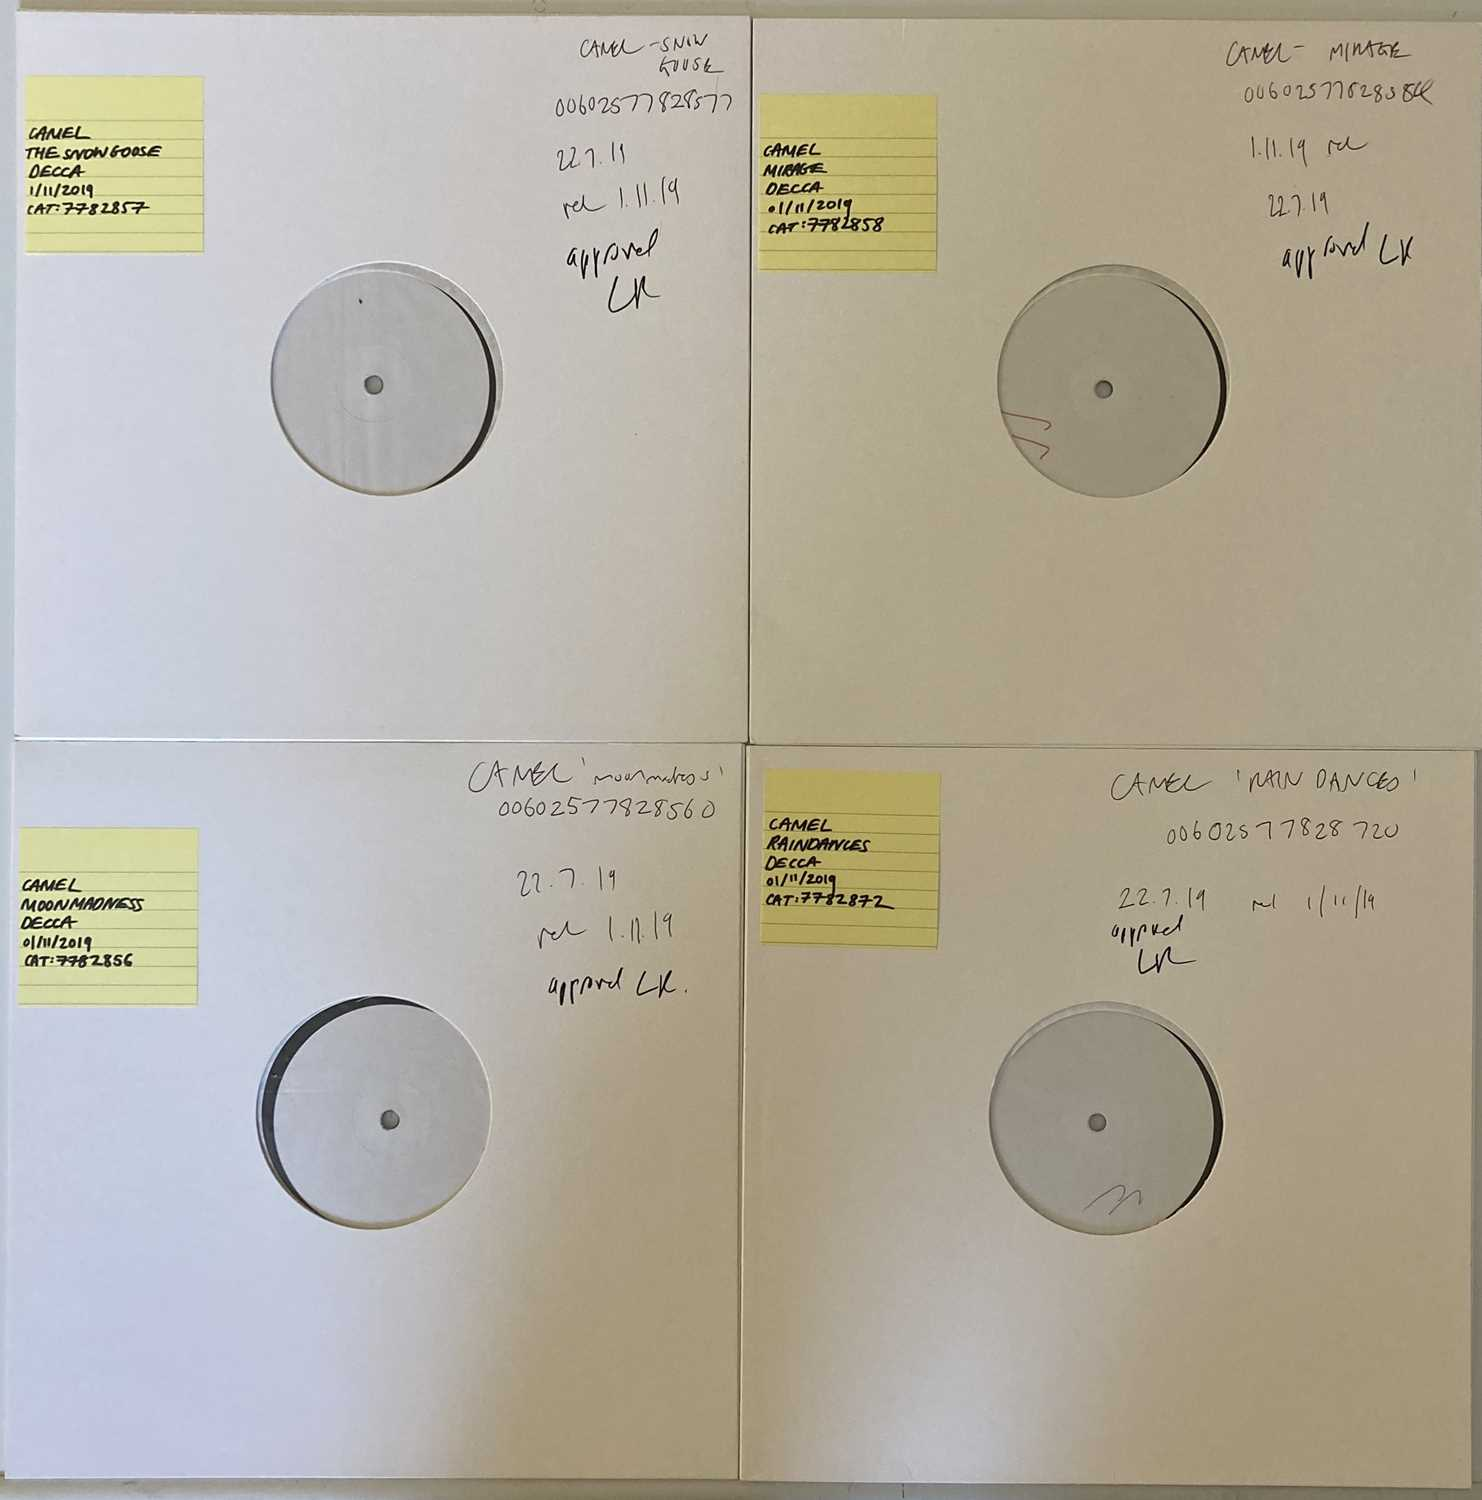 CAMEL 2019 REISSUES - WHITE LABEL TEST PRESSINGS.